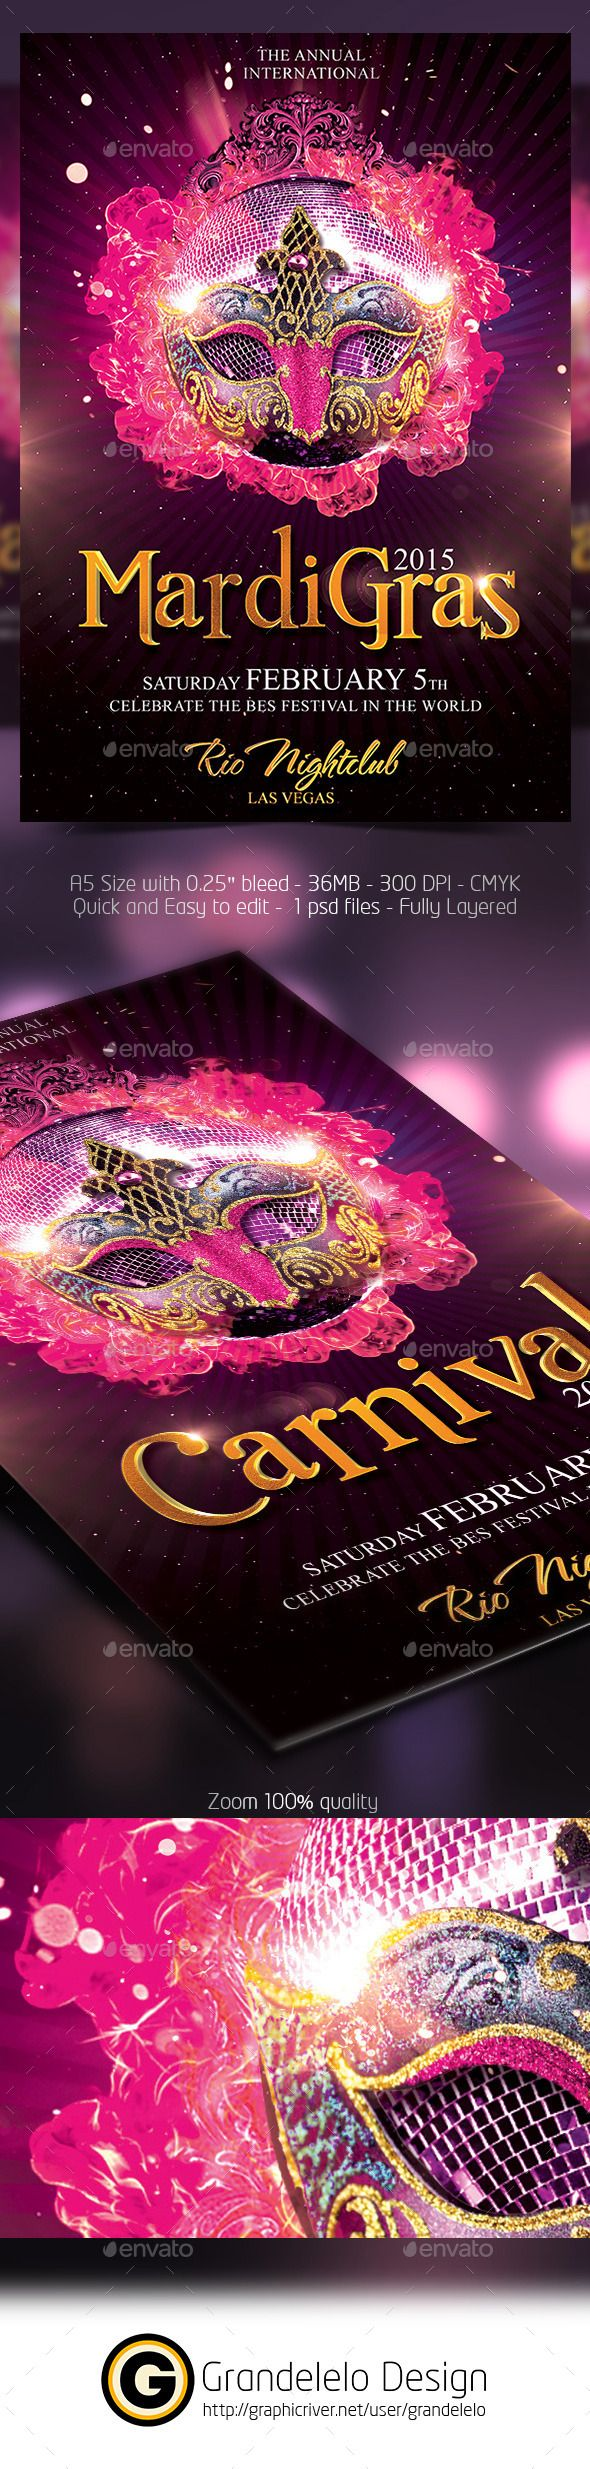 The Carnival 2015 Flyer Template - Clubs & Parties Events Download here: https://graphicriver.net/item/the-carnival-2015-flyer-template/9917972?ref=alena994